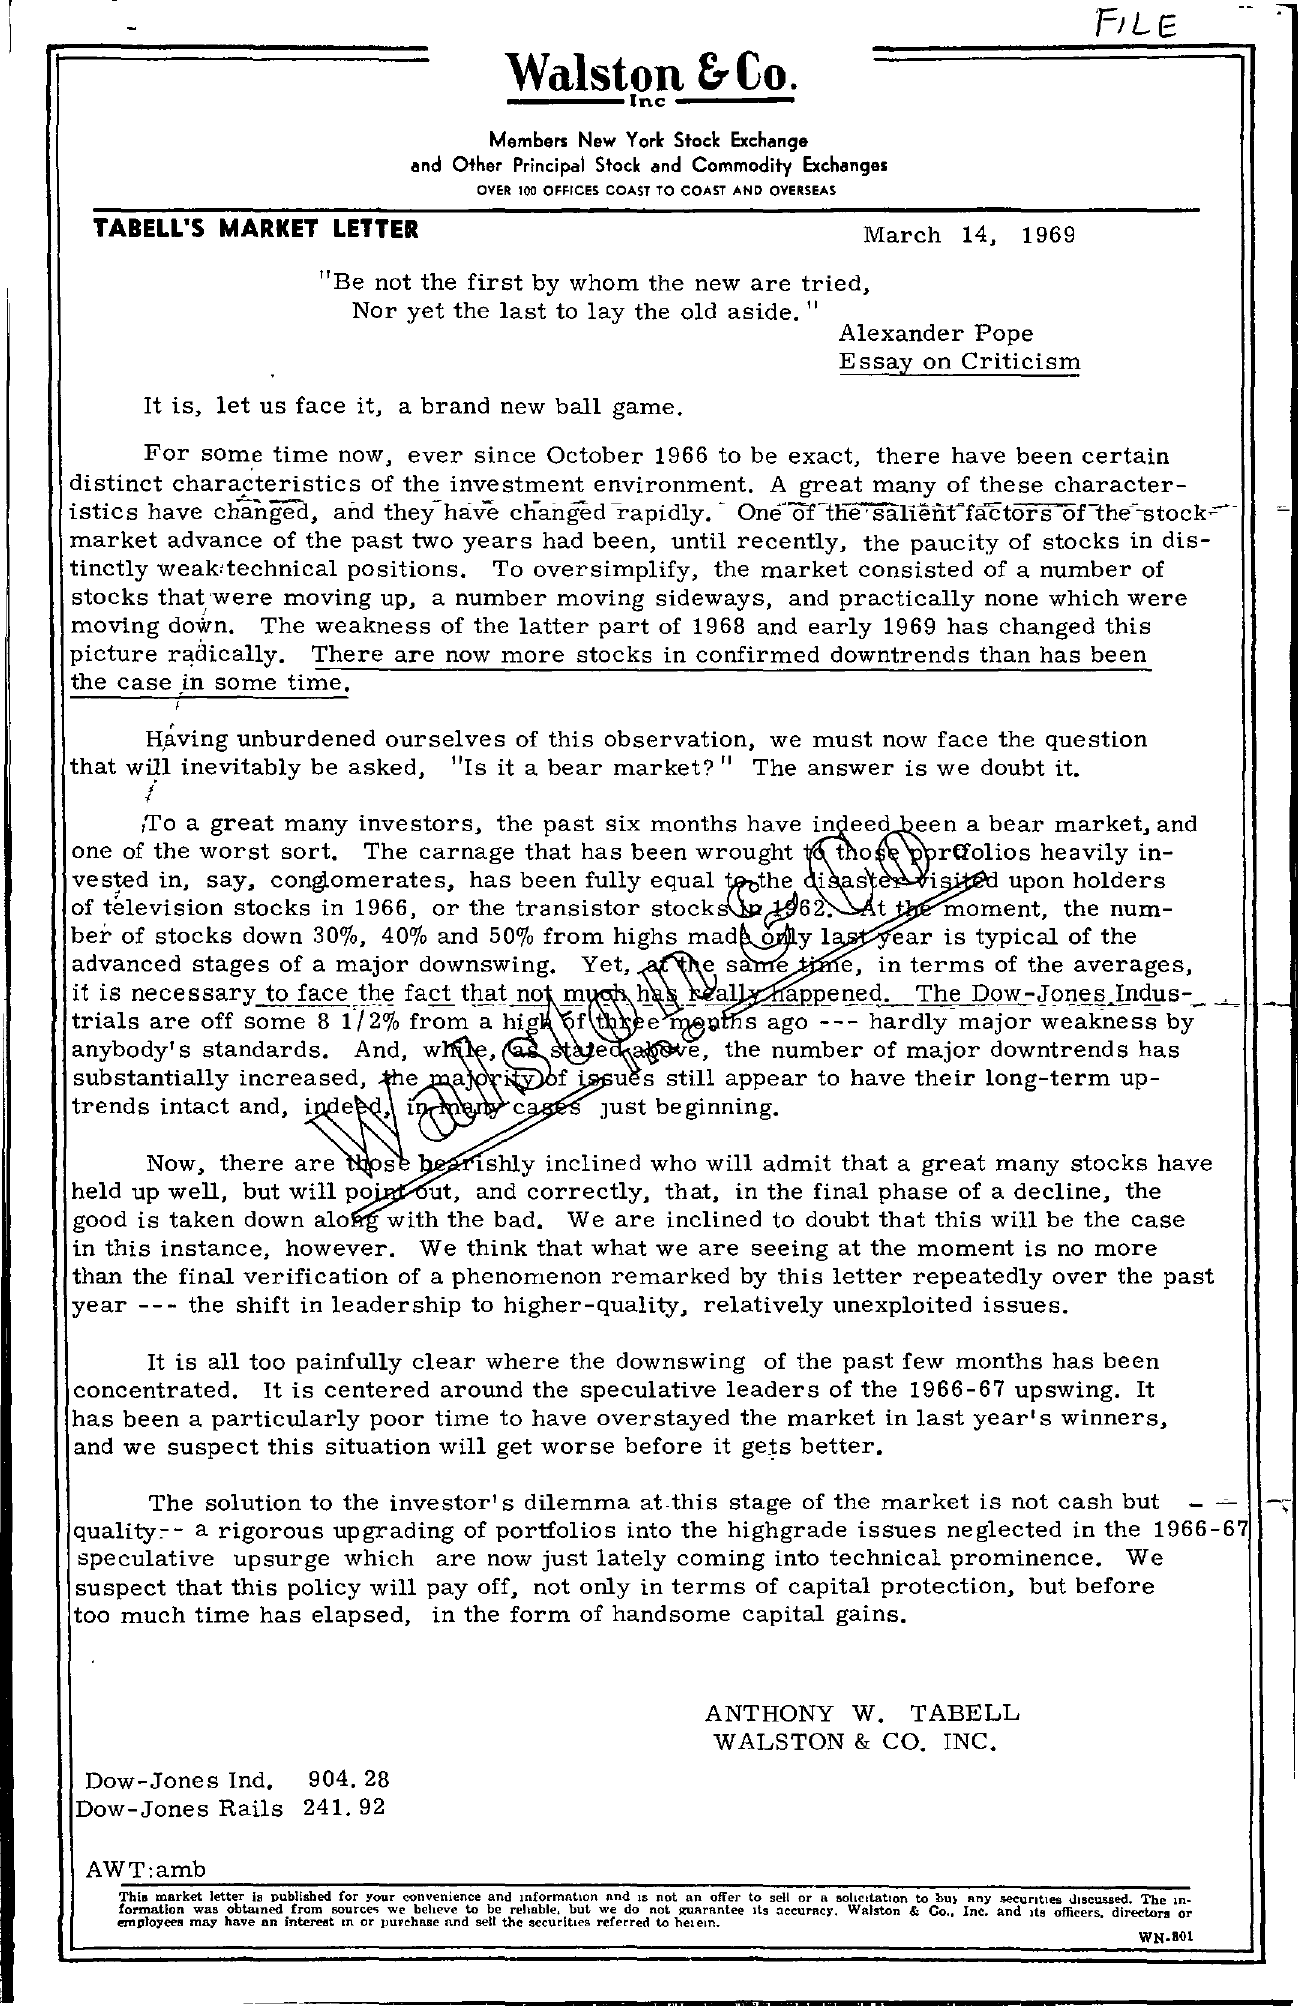 Tabell's Market Letter - March 14, 1969